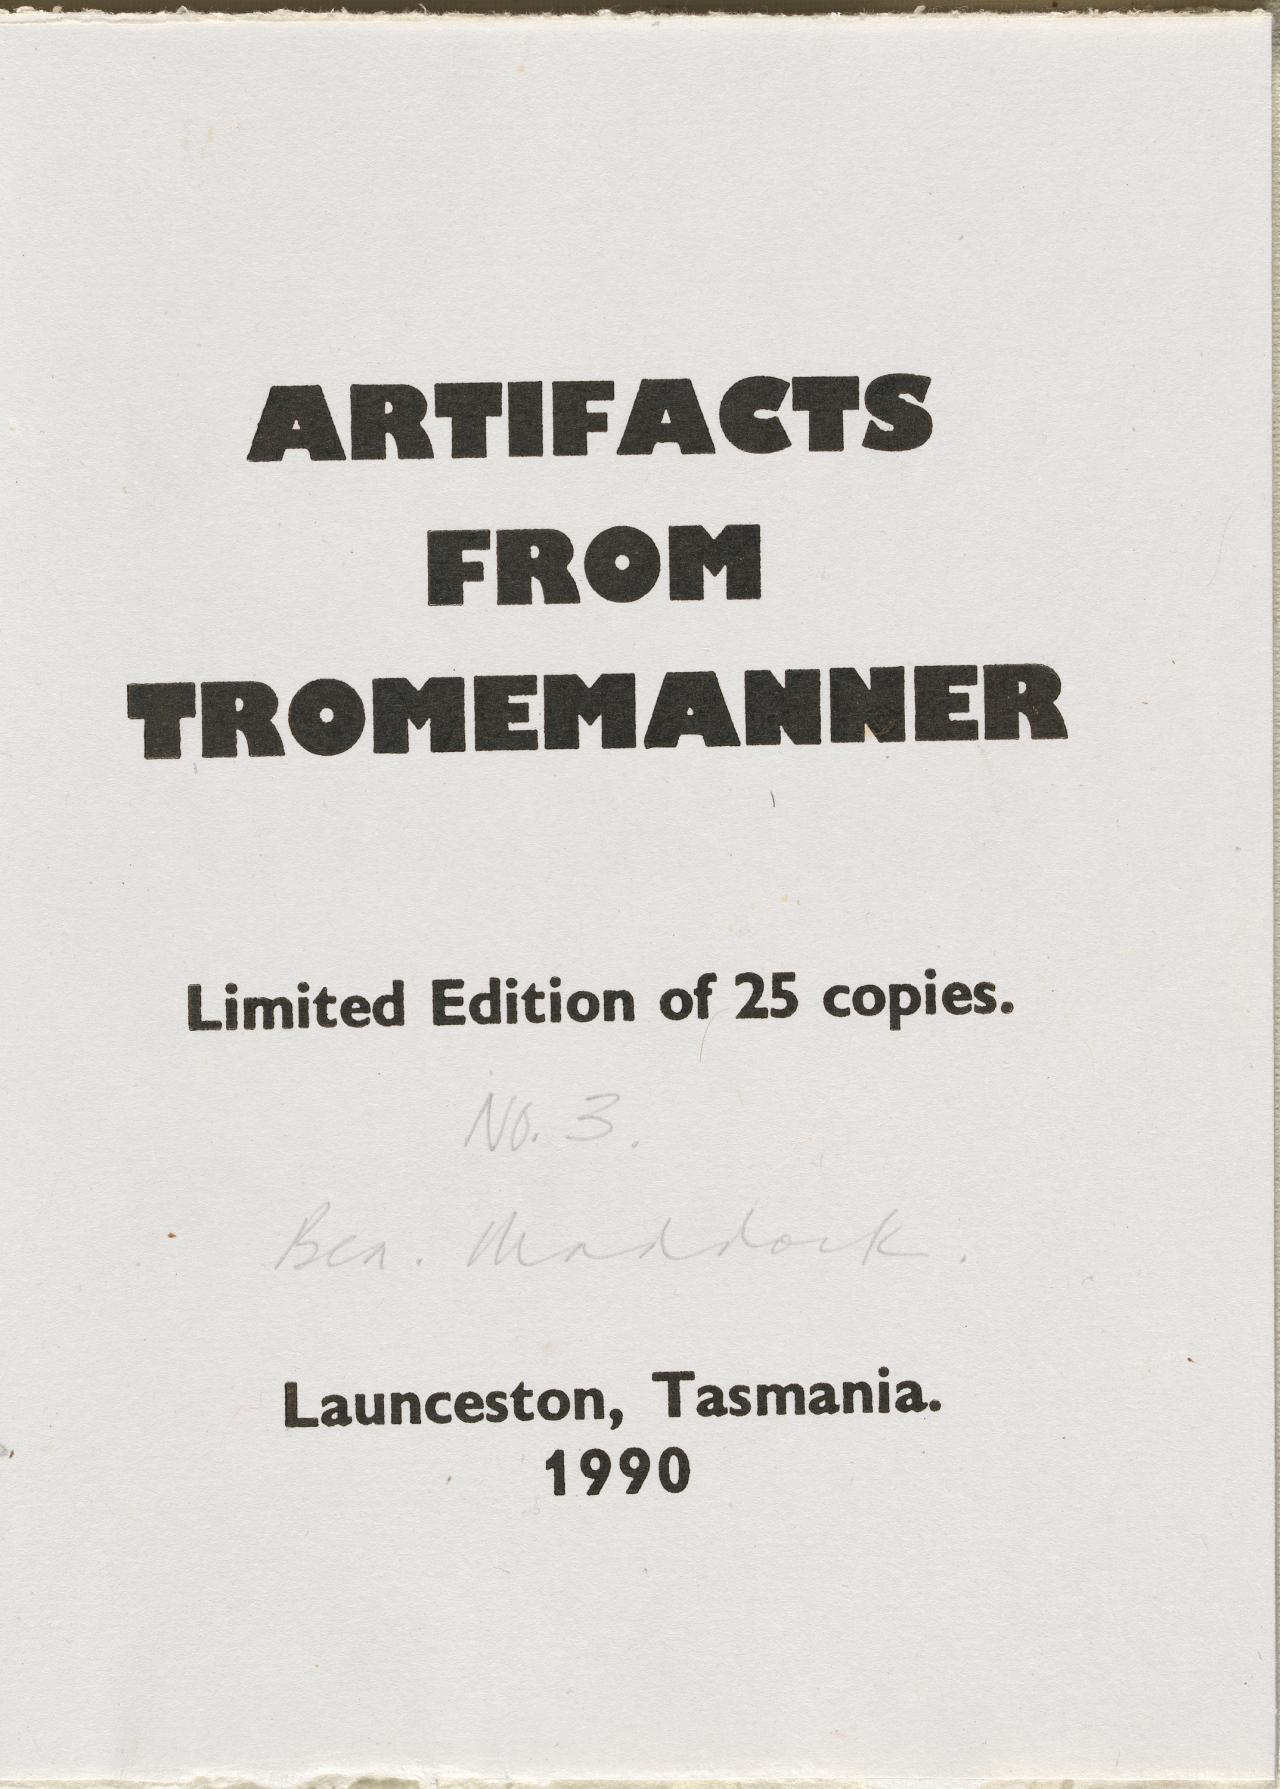 Artifacts from Tromemanner